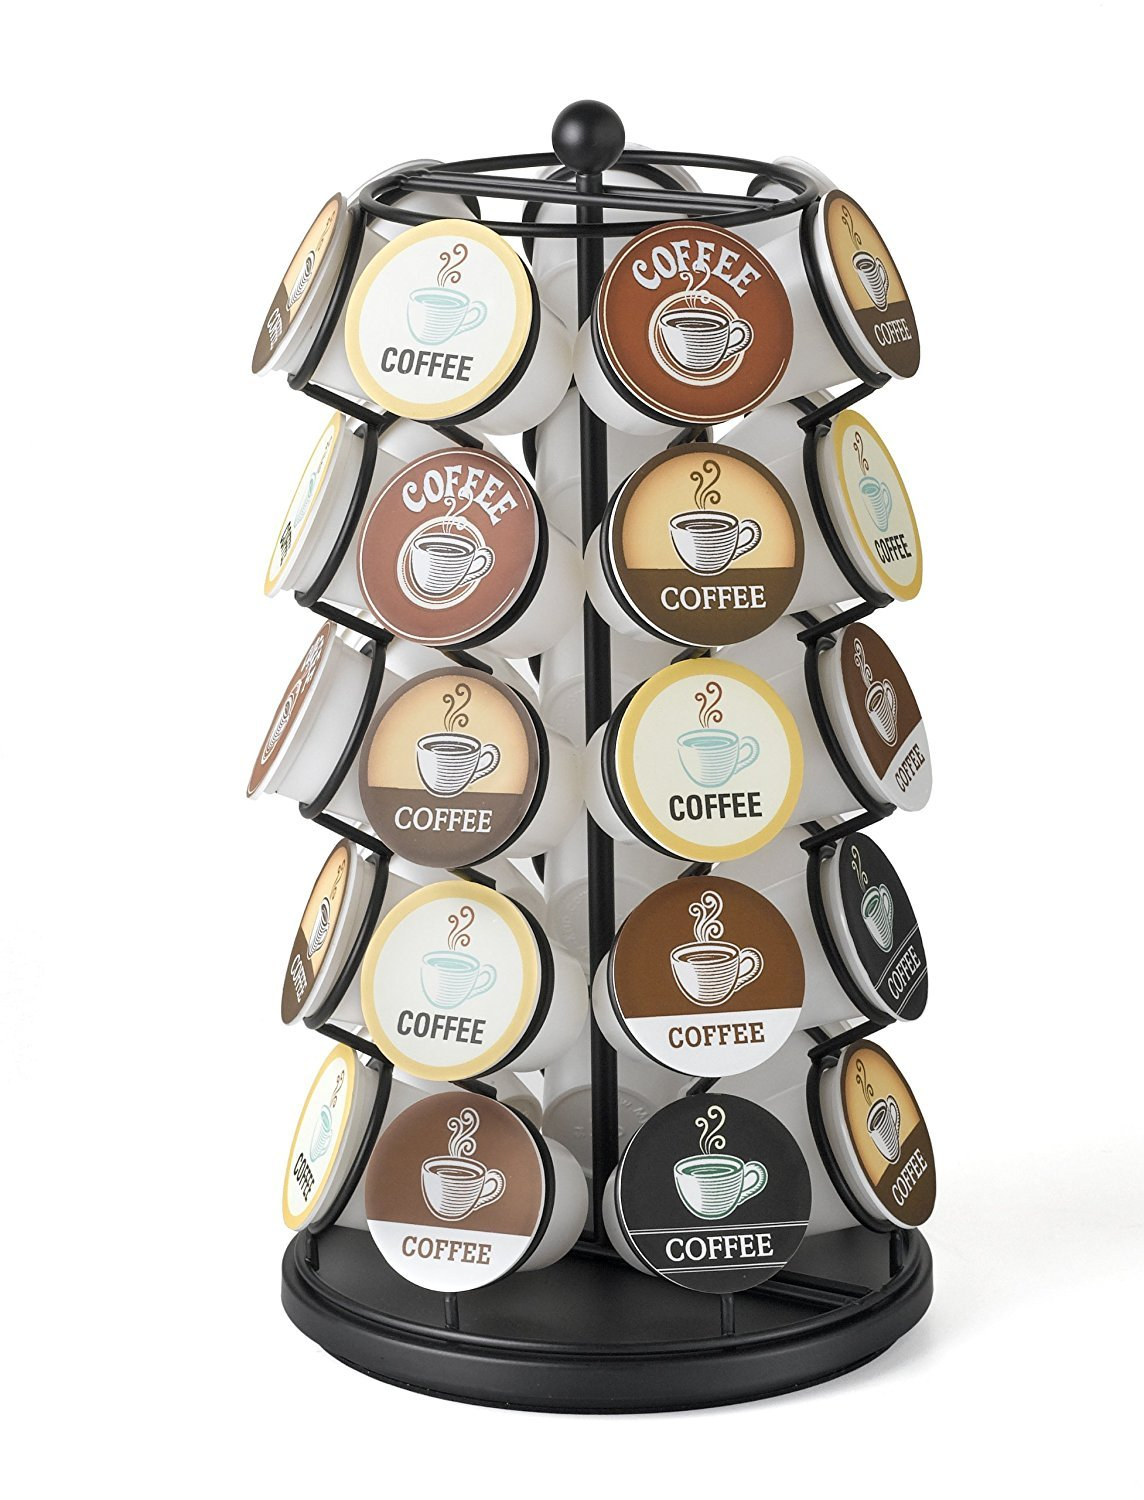 K-Cup Carousel Organizer Quality Spinning Keurig K Cup Coffee Pod Tower Single Serve Nespresso Storage Rack Heavy Duty 360 Degree Rotating Espresso Capsules Holder Holds 35 K Cups Classic Black